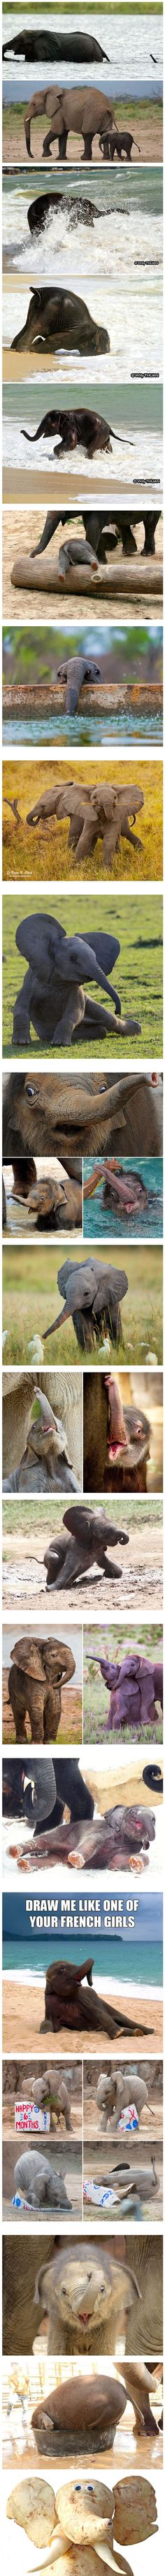 Baby Elephants That Will Instantly Make You Smile